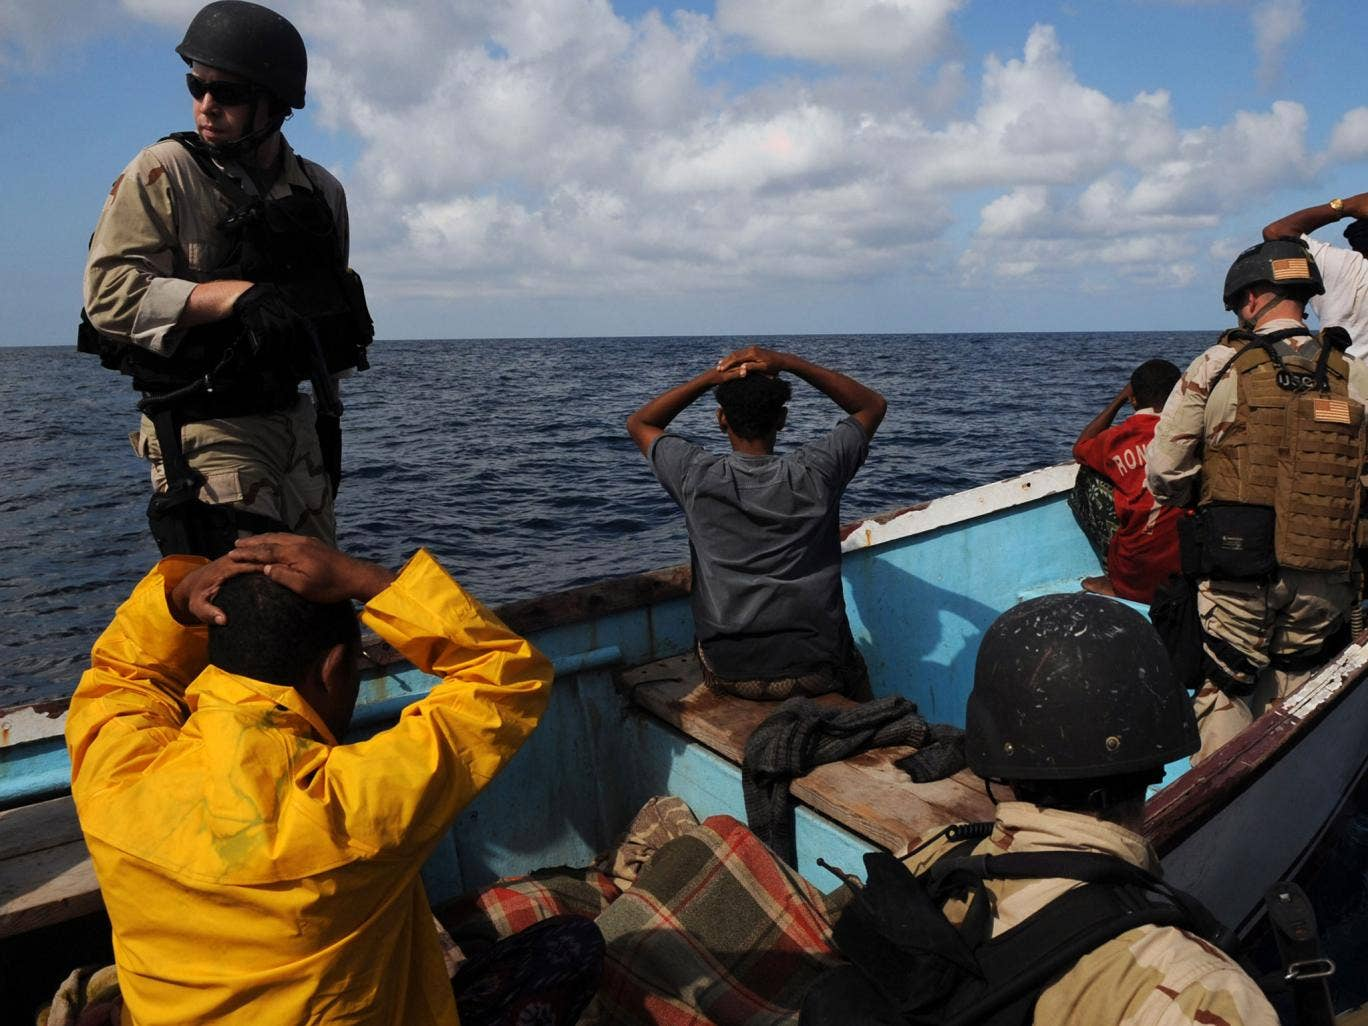 Somali Pirates Seize Oil Tanker In First Major Hijack Since 2012 Ship Diagram With Labels Google Search Pirate Ships Huge Decline Hijackings By